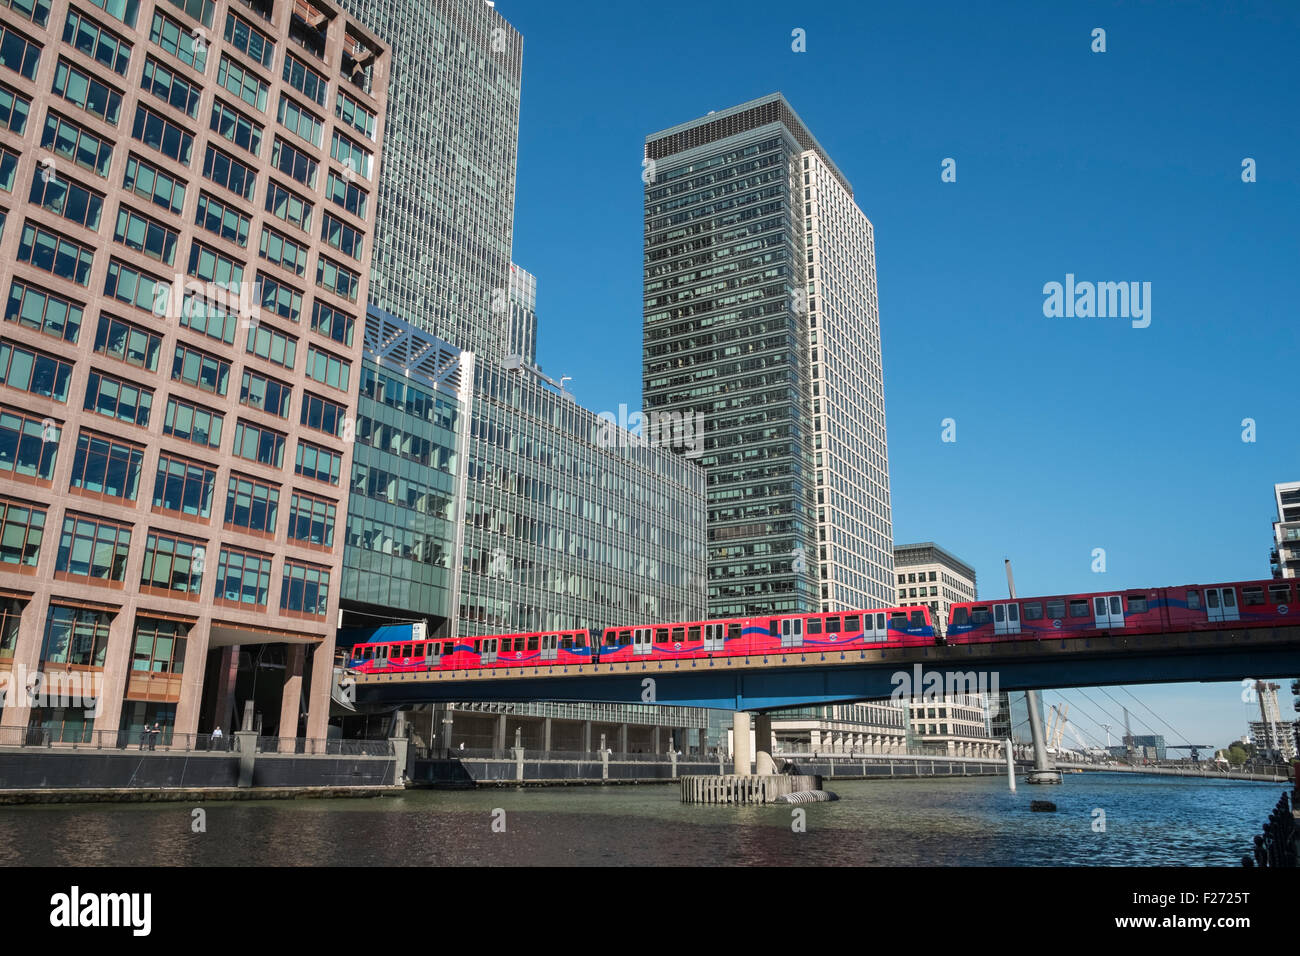 Tall modern office buildings and Docklands Light Railway train, Canary Wharf financial district, London, England - Stock Image